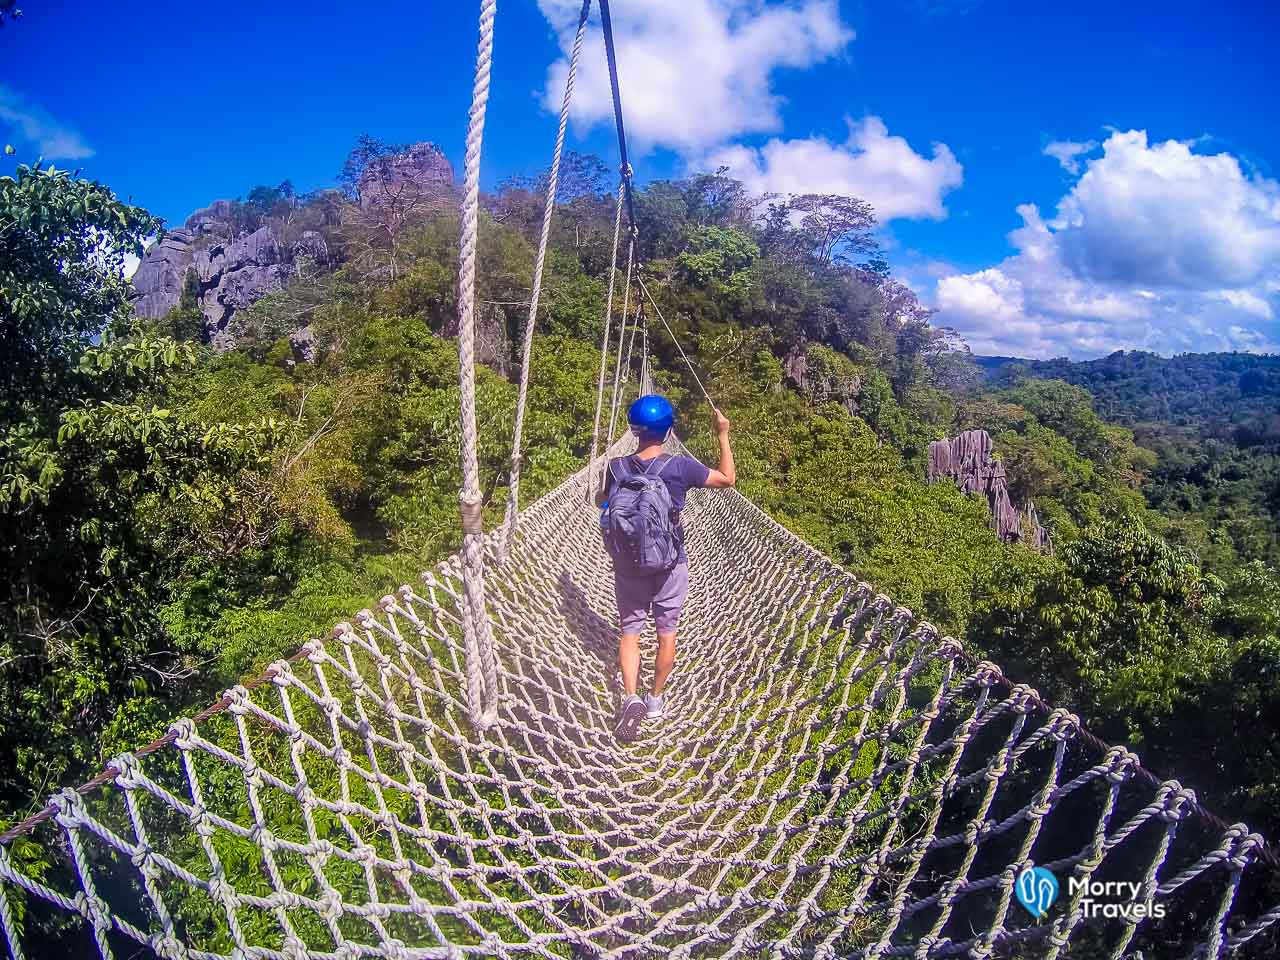 Morry Travels | Masungi Georeserve Exclusive Private Tour